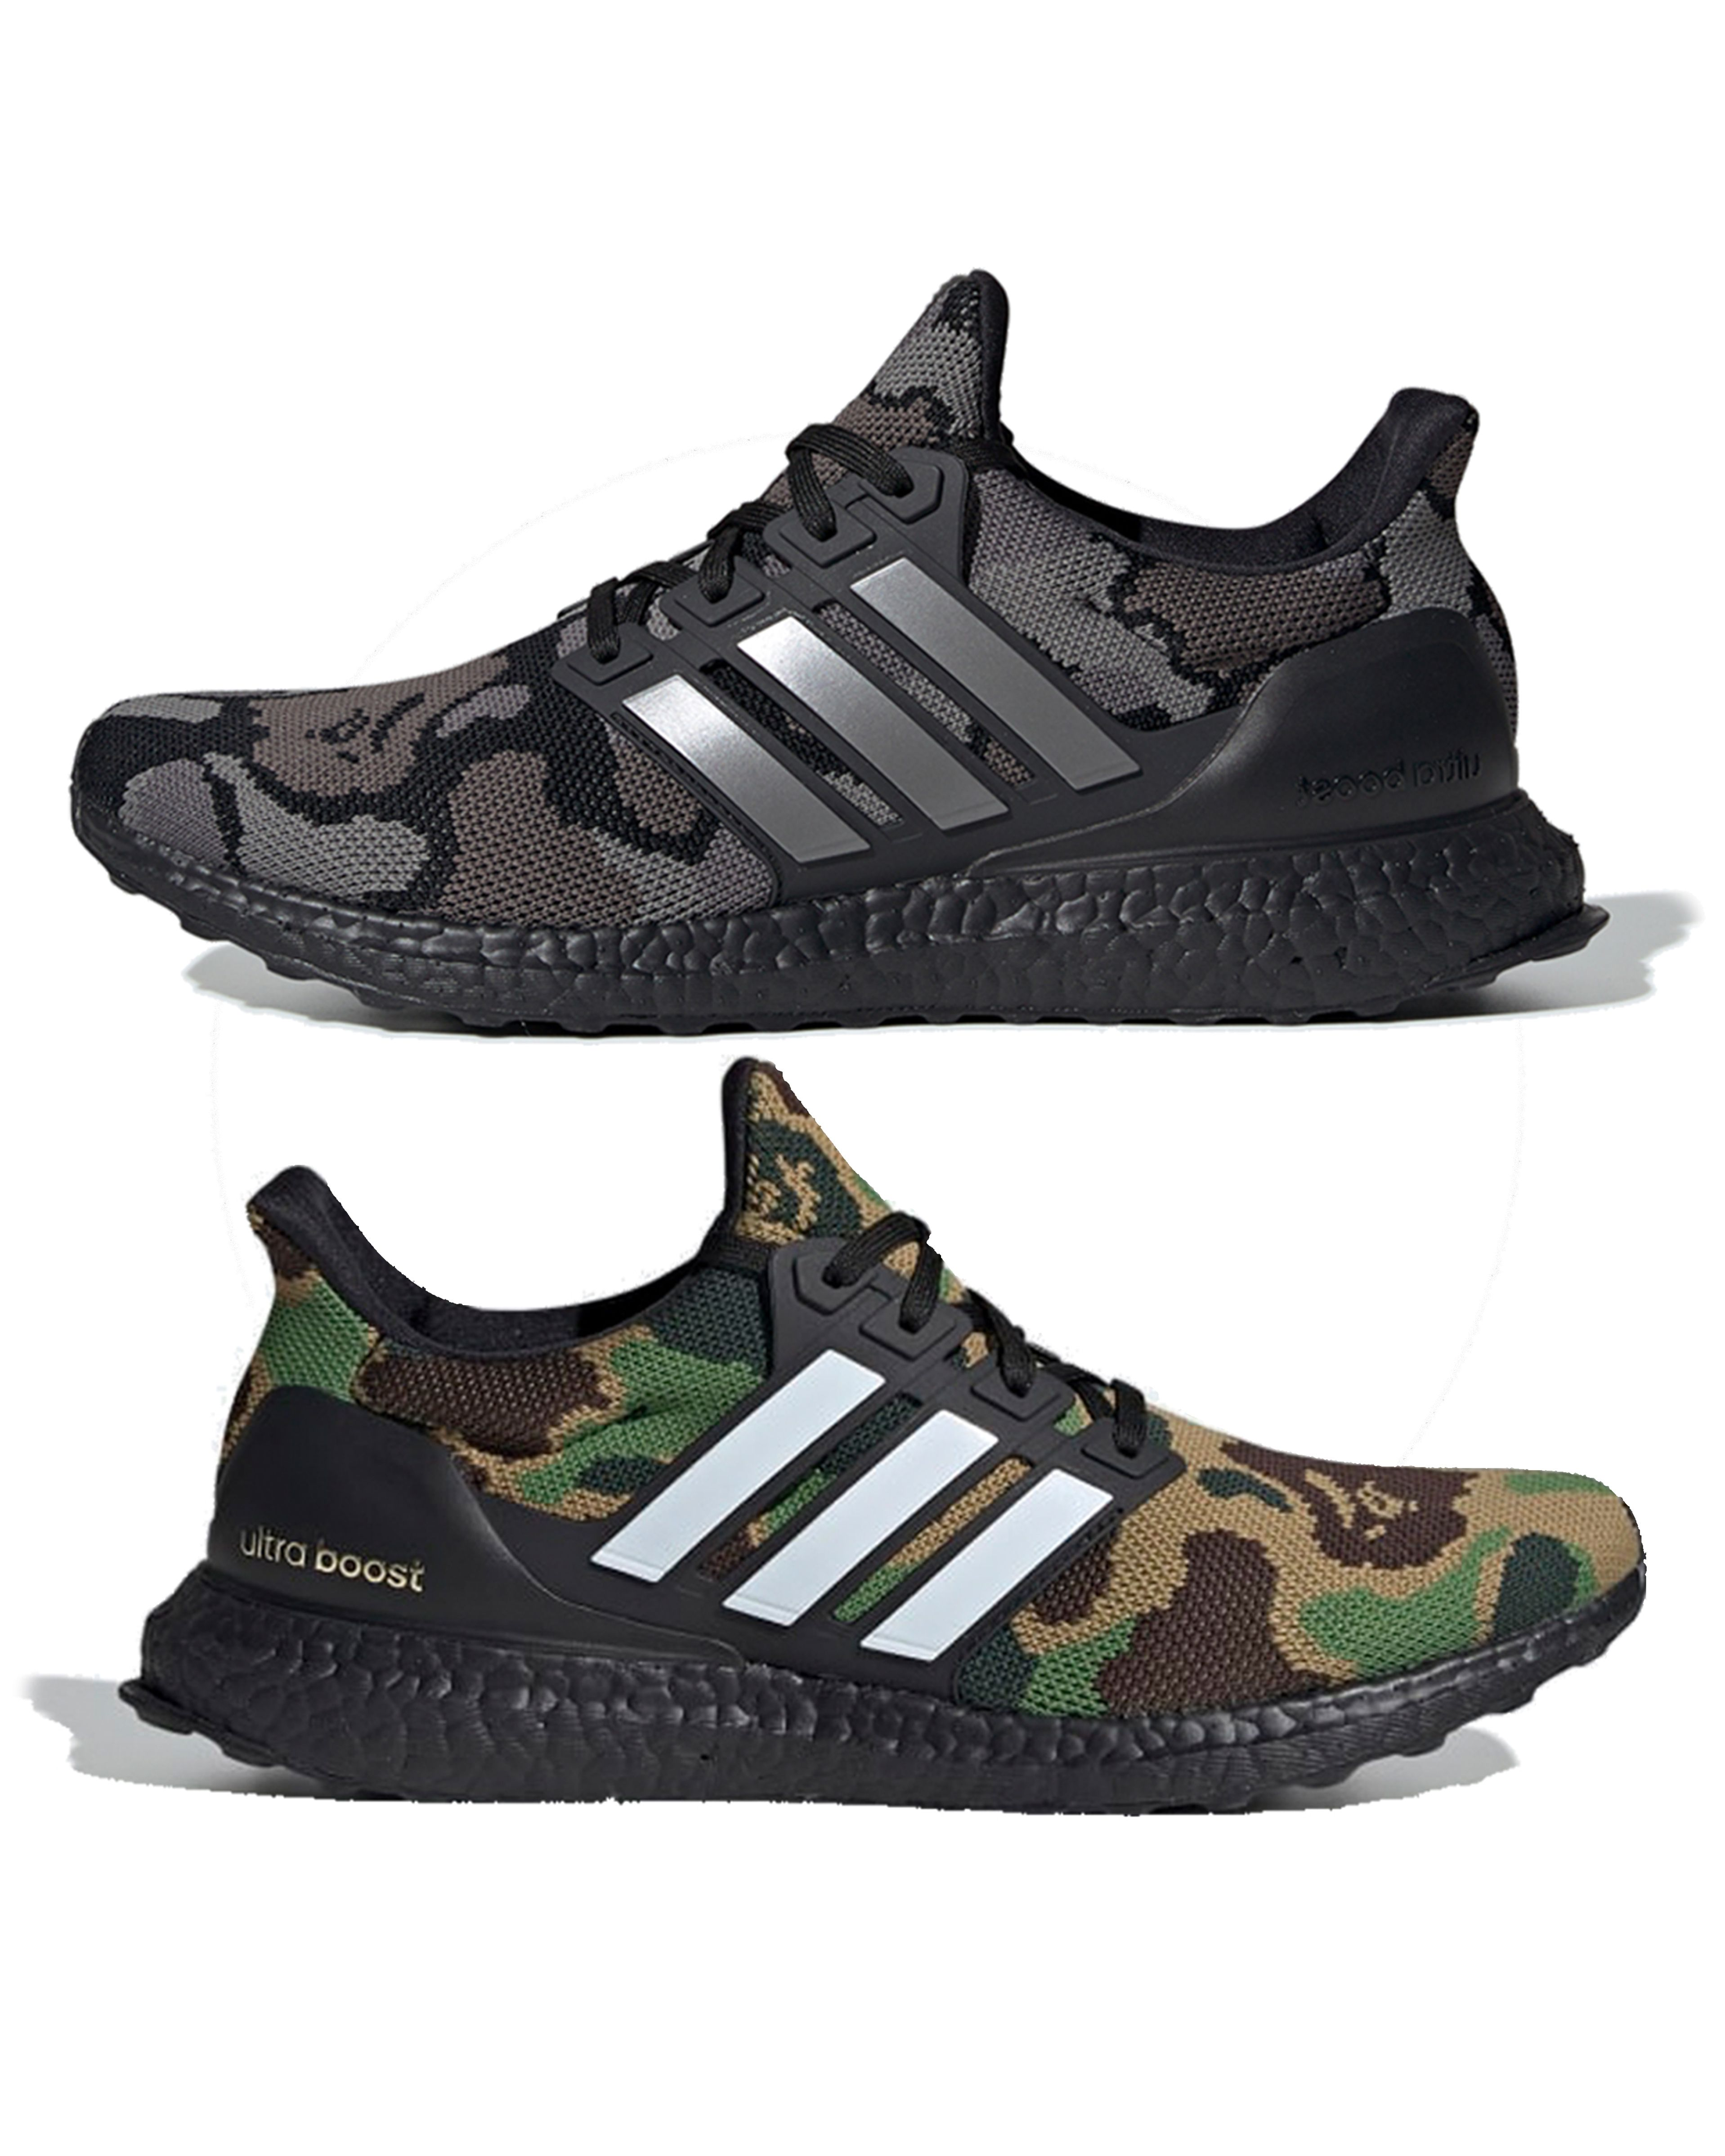 Shop the Adidas x A Bathing Ape Superbowl collection online